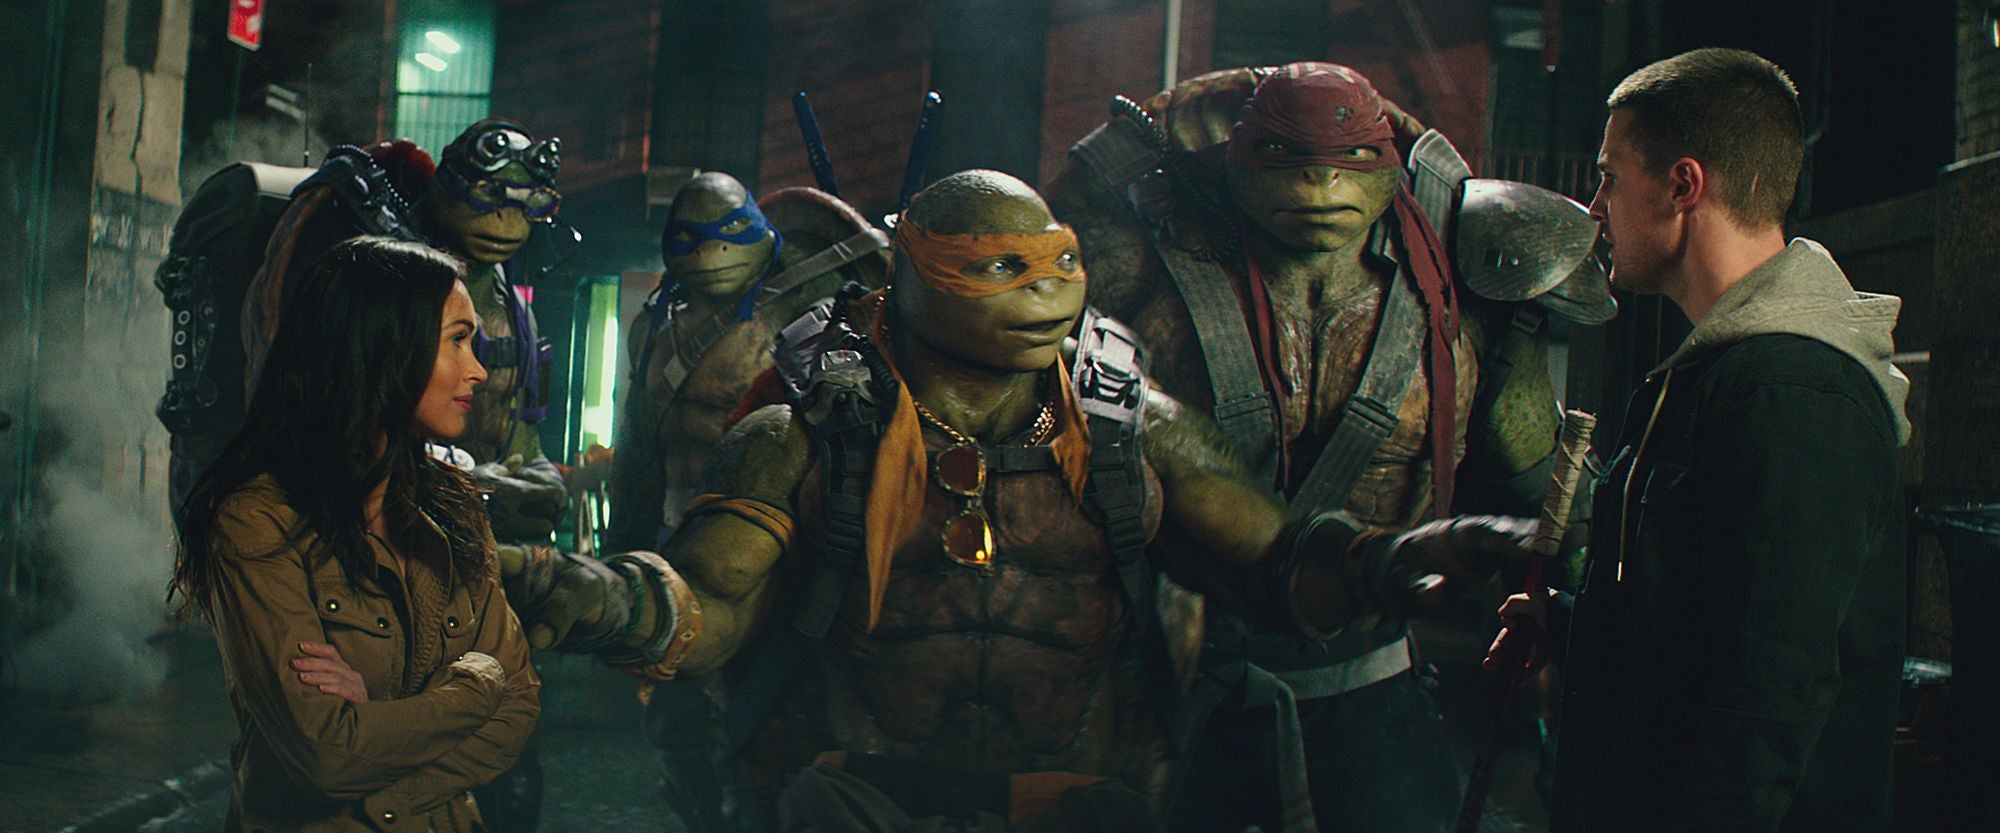 Wait, Is the Teenage Mutant Ninja Turtles Sequel Actually... Good?